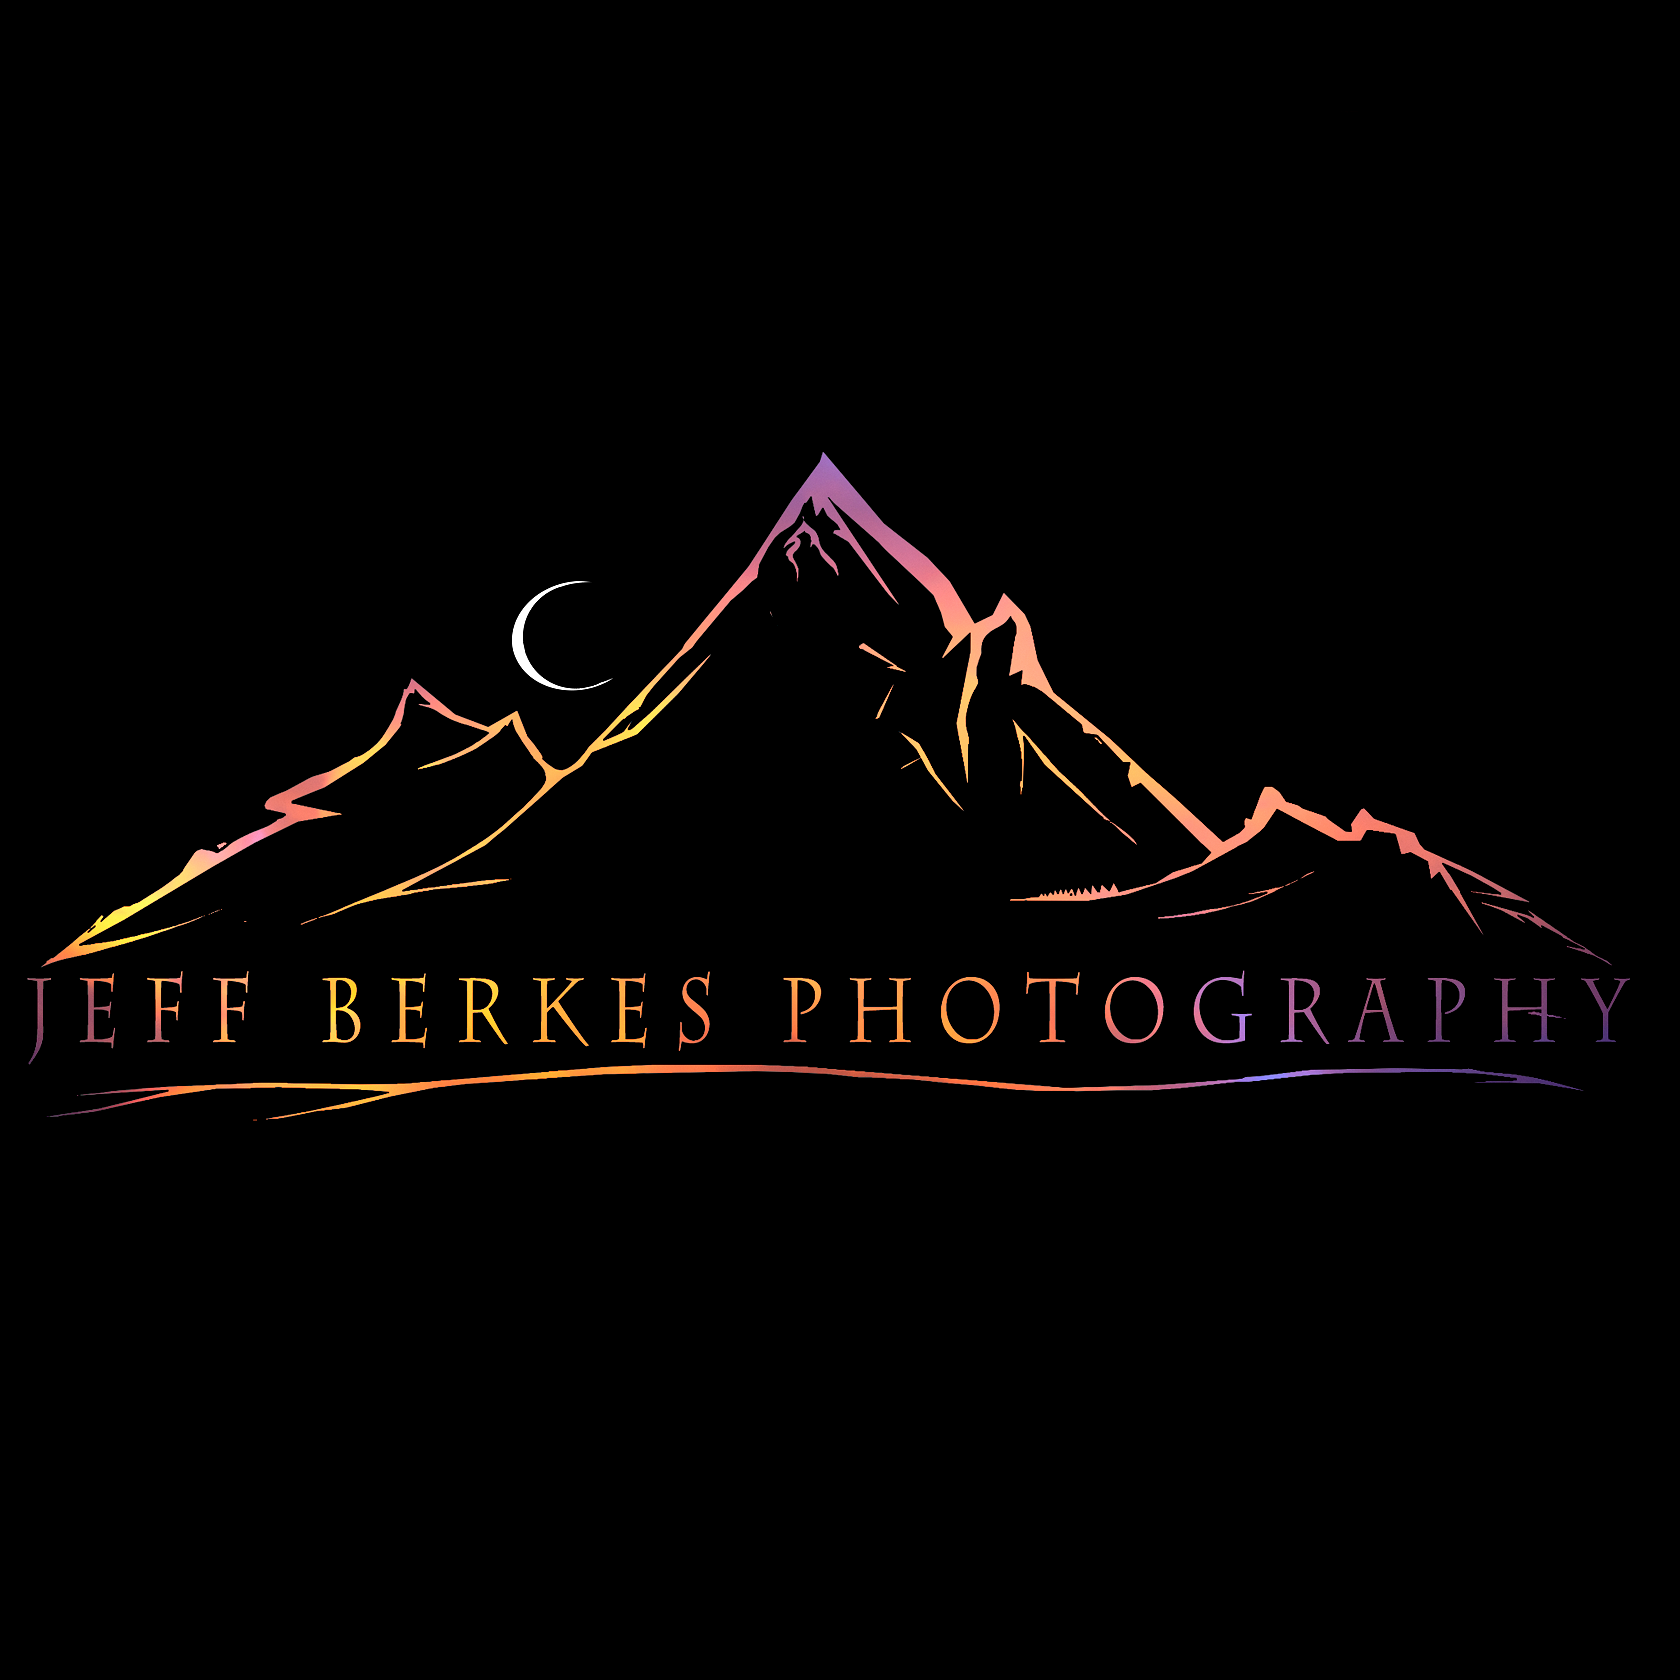 Jeff Berkes Photography